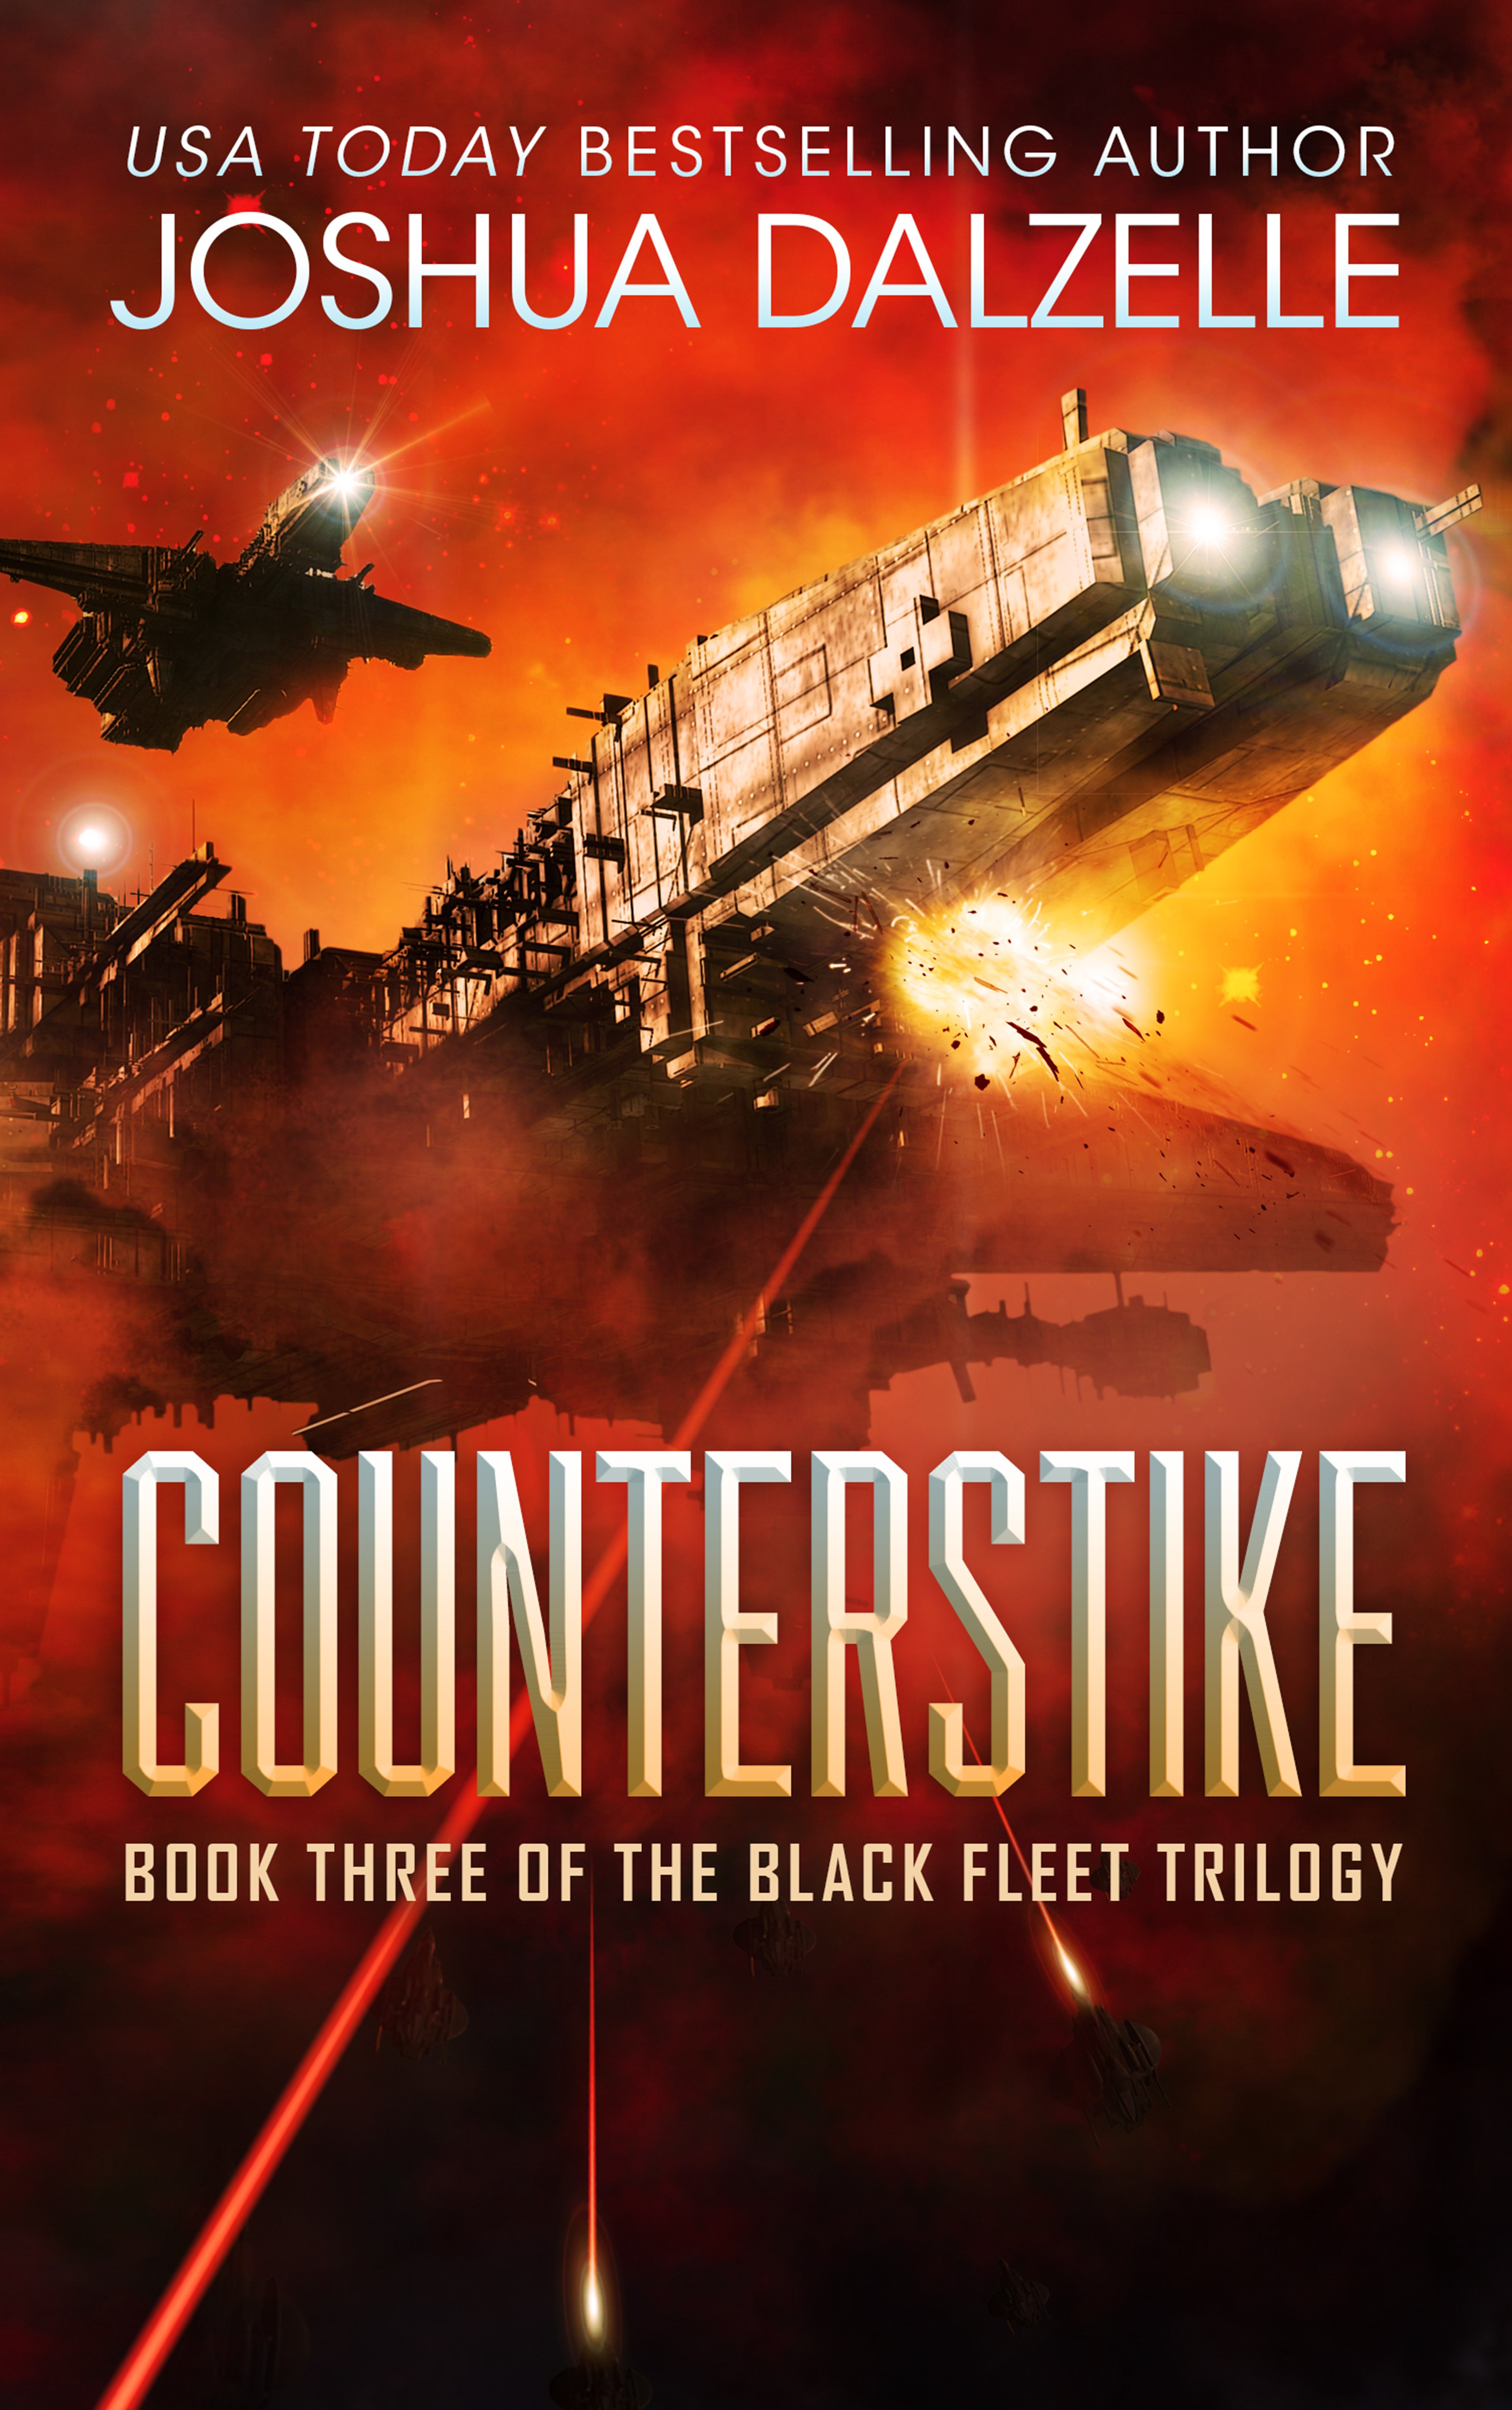 New cover for Black Fleet Trilogy, book 3